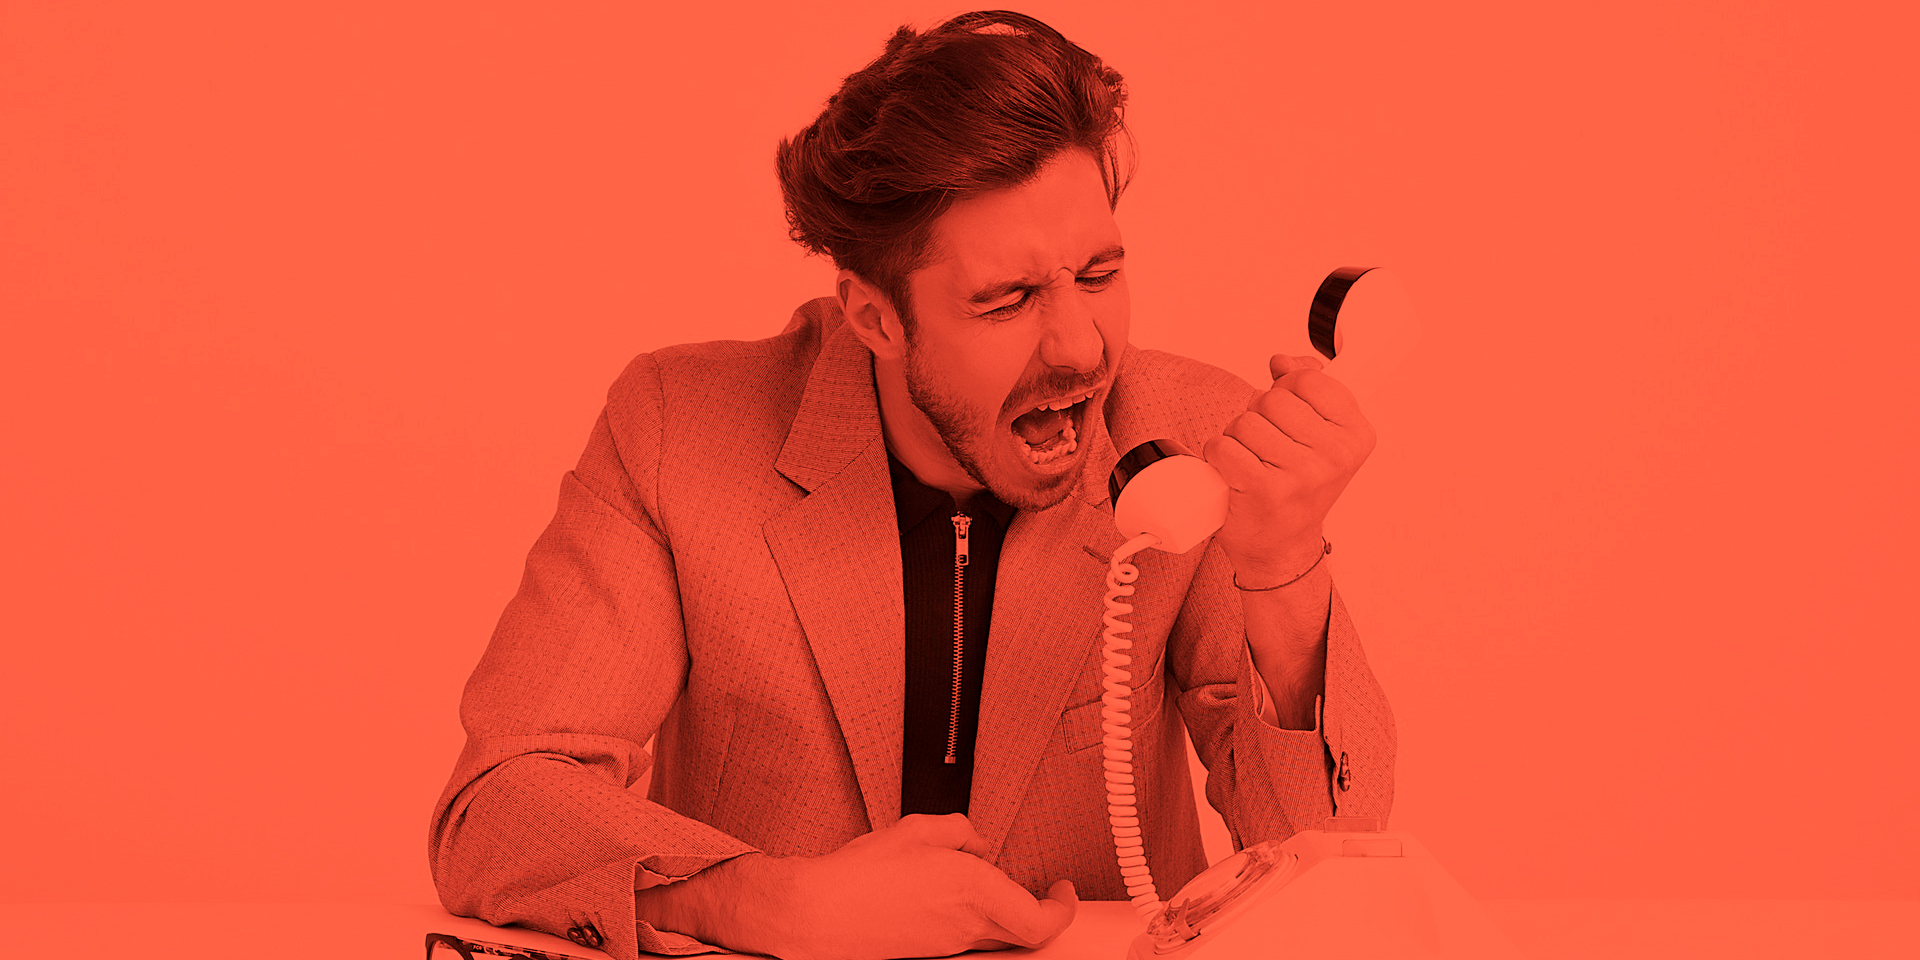 yelling into phone-1